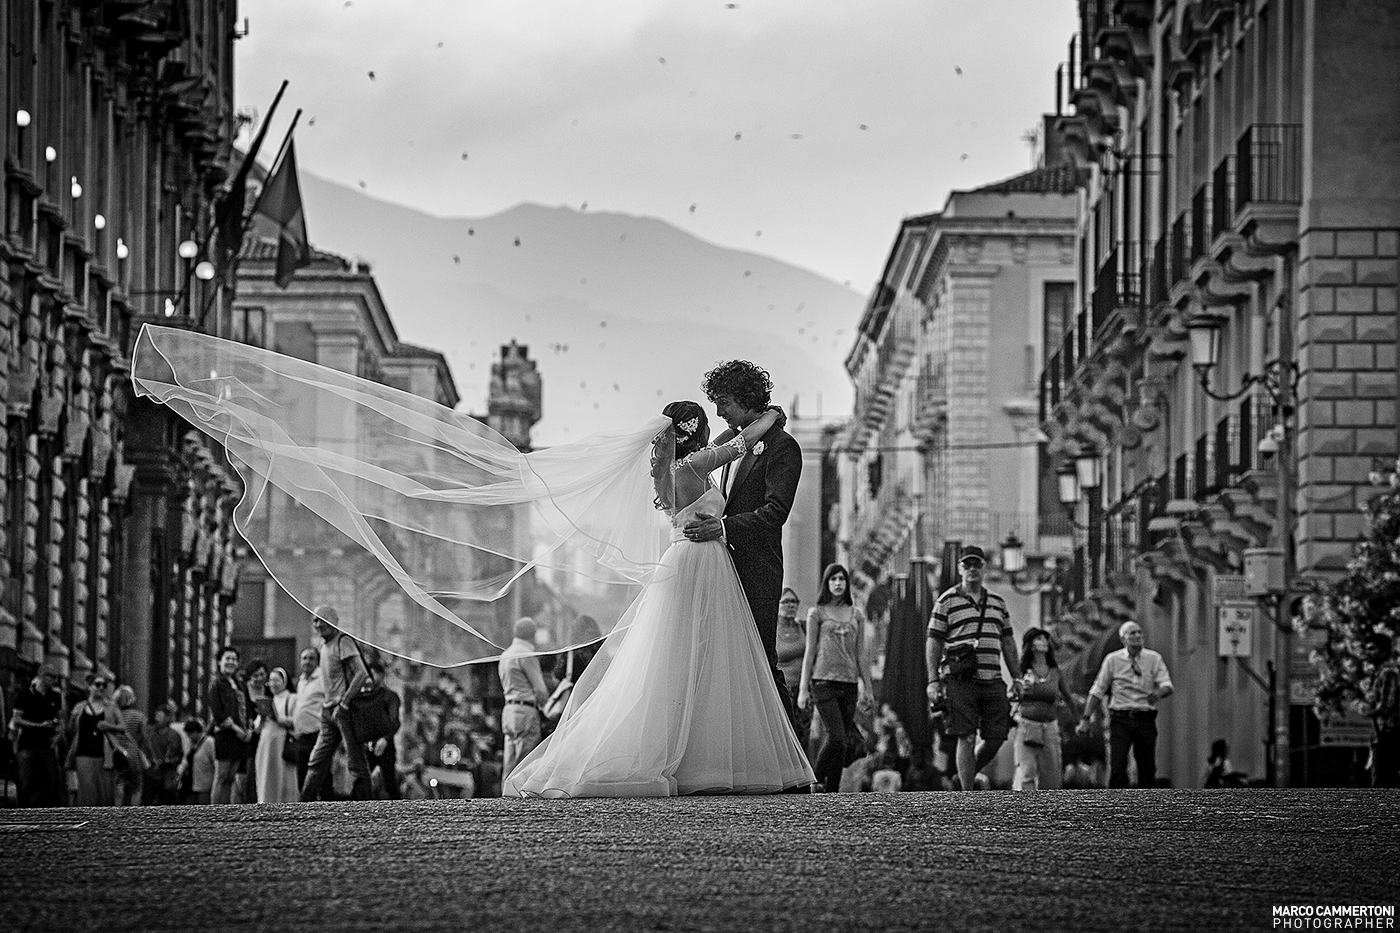 Wedding in Sicily - Federica & Matteo